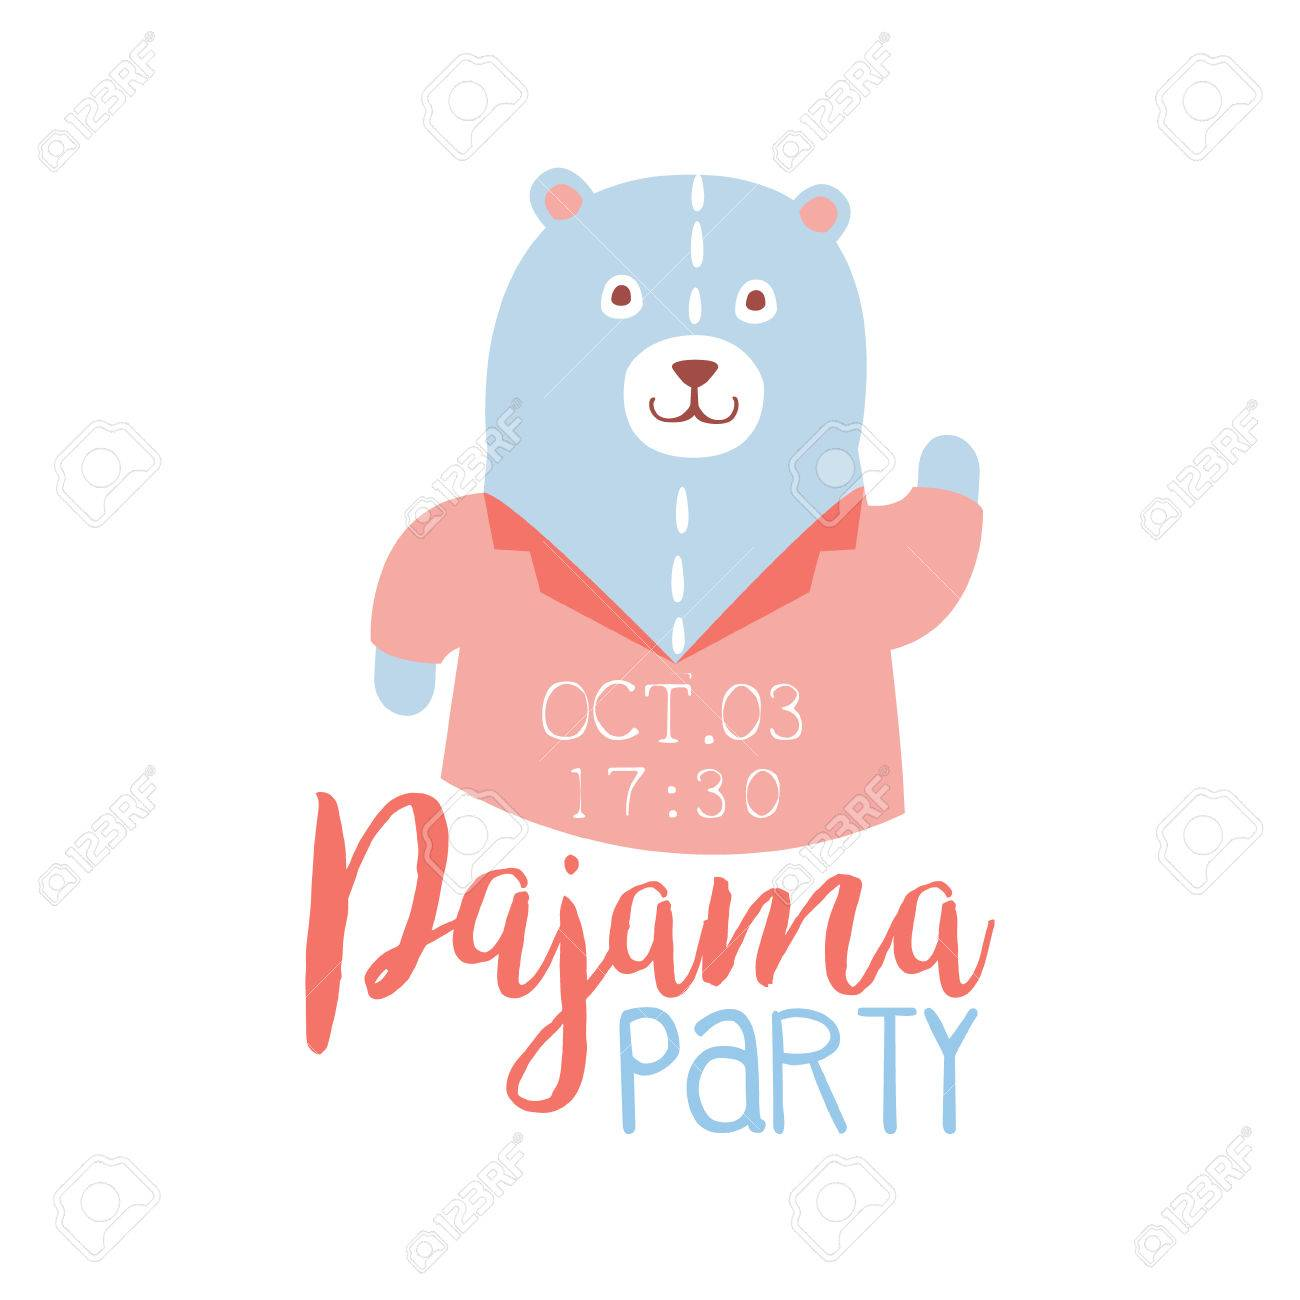 Girly Pajama Party Invitation Card Template With Teddy Bear